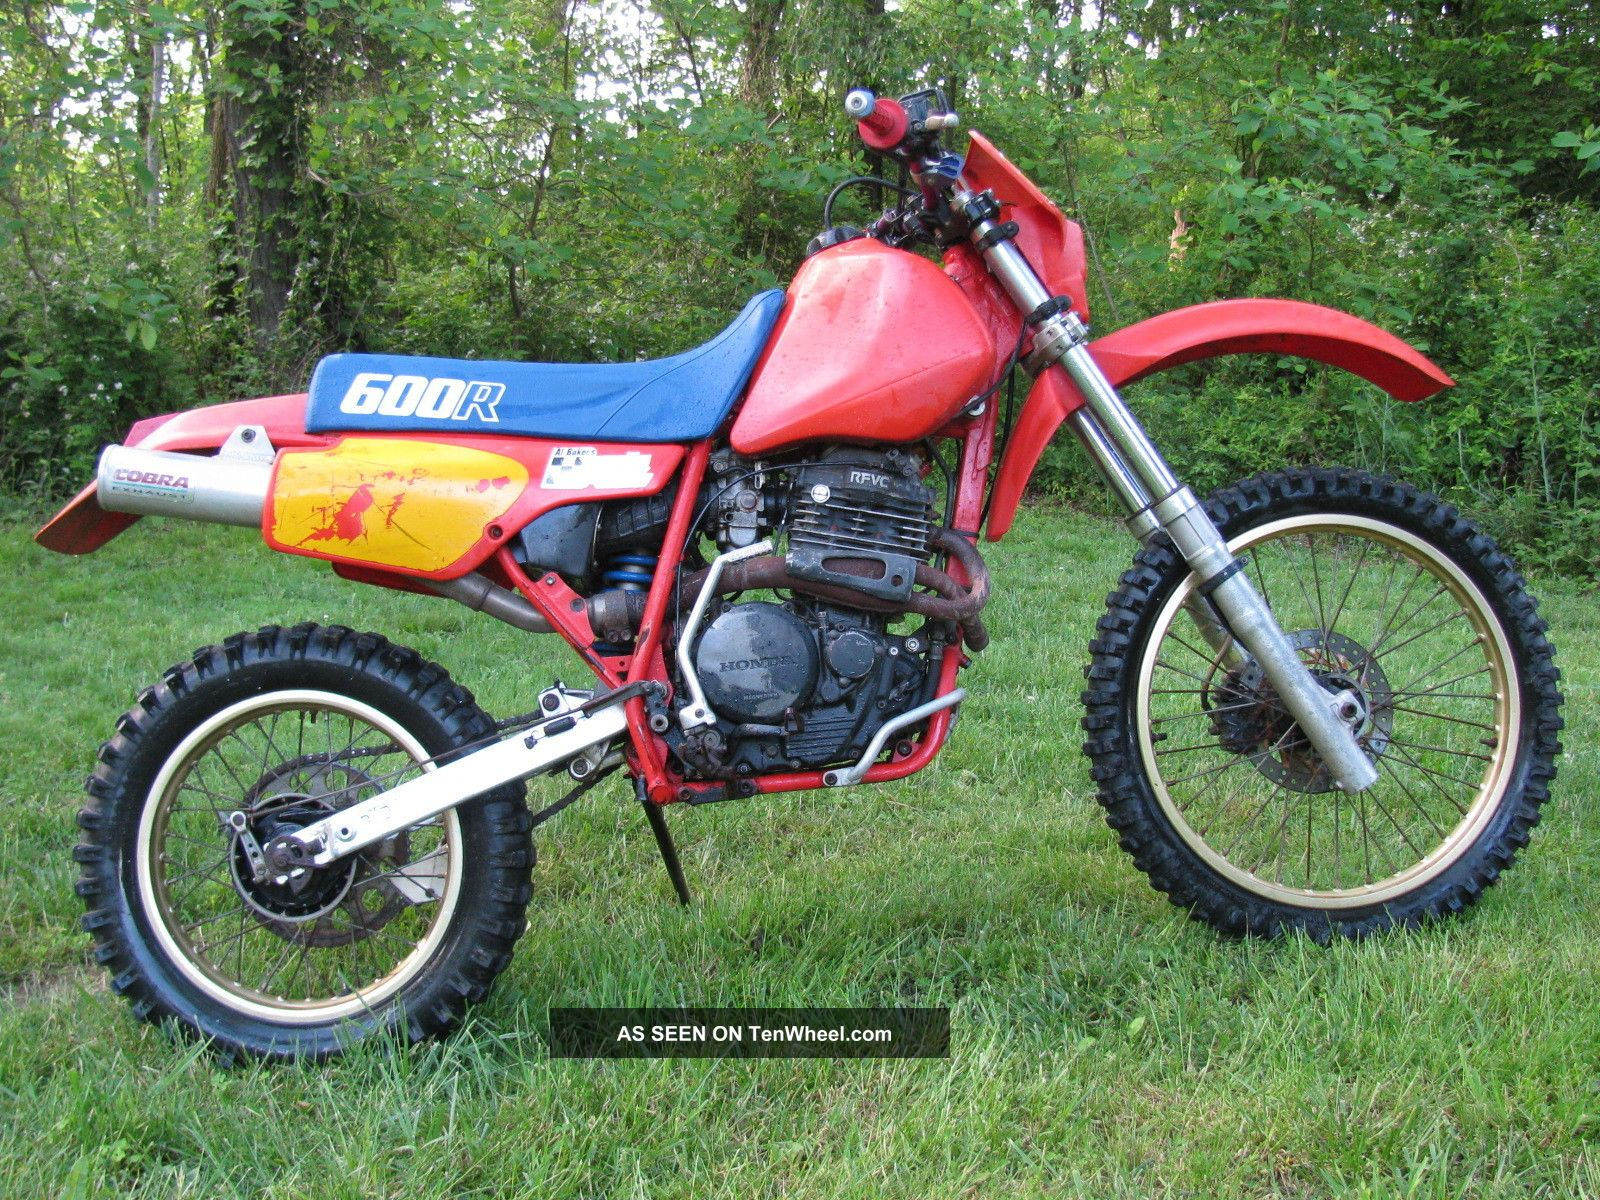 1986 Honda Xr600r Wiring Diagram - Somurich.com on